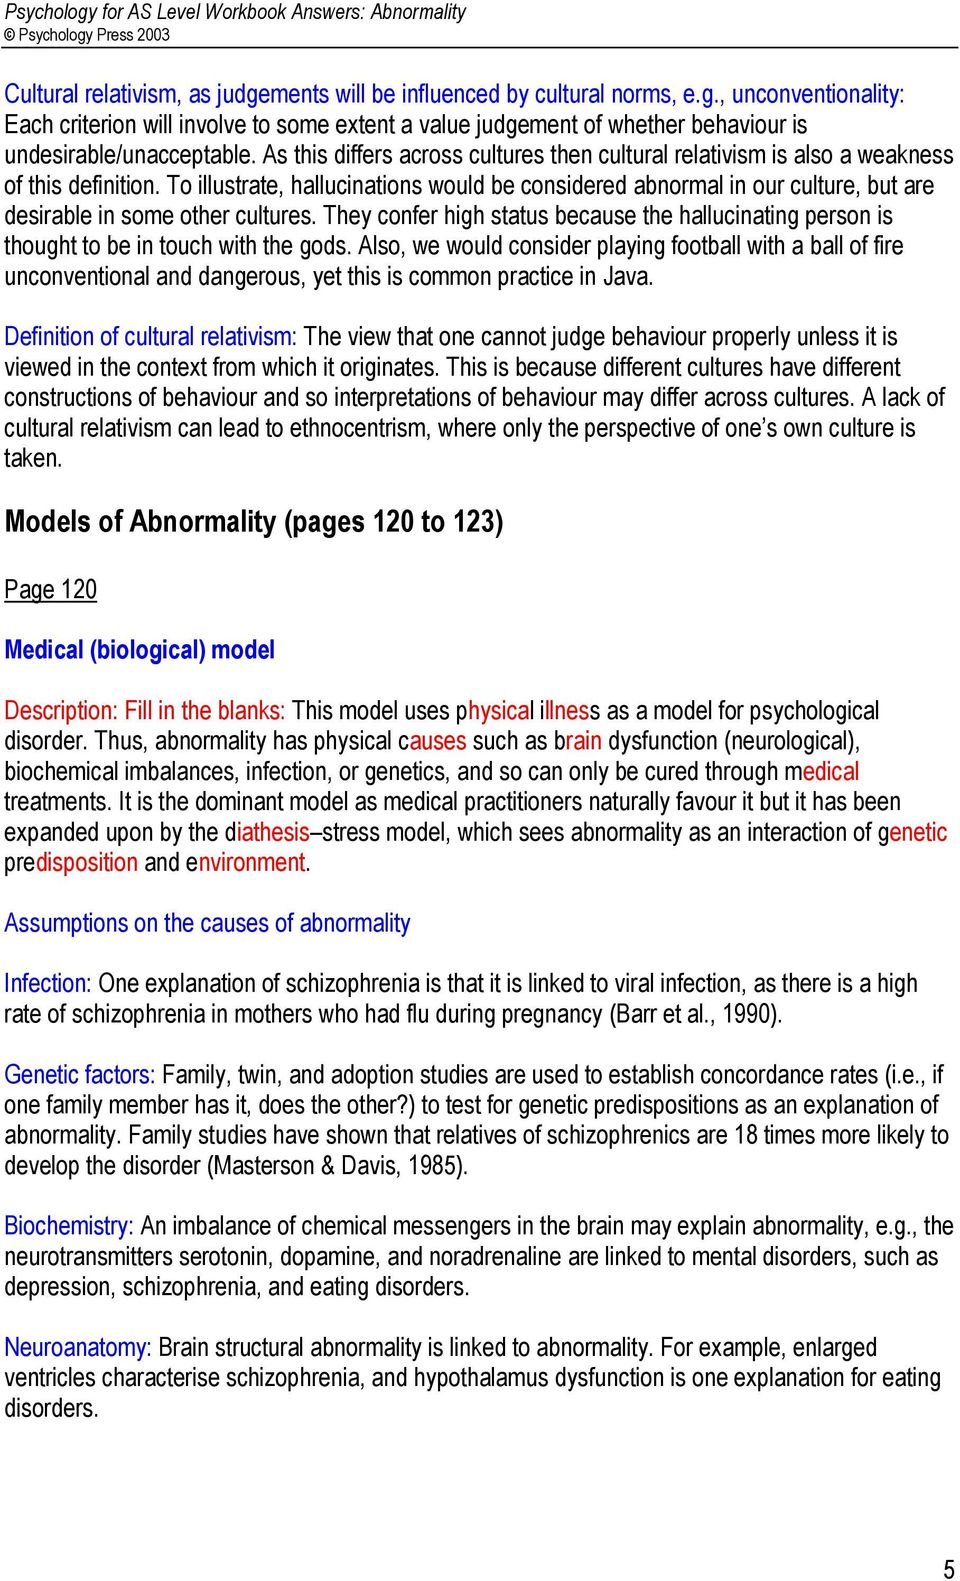 ANSWERS: Abnormality  Contents - PDF